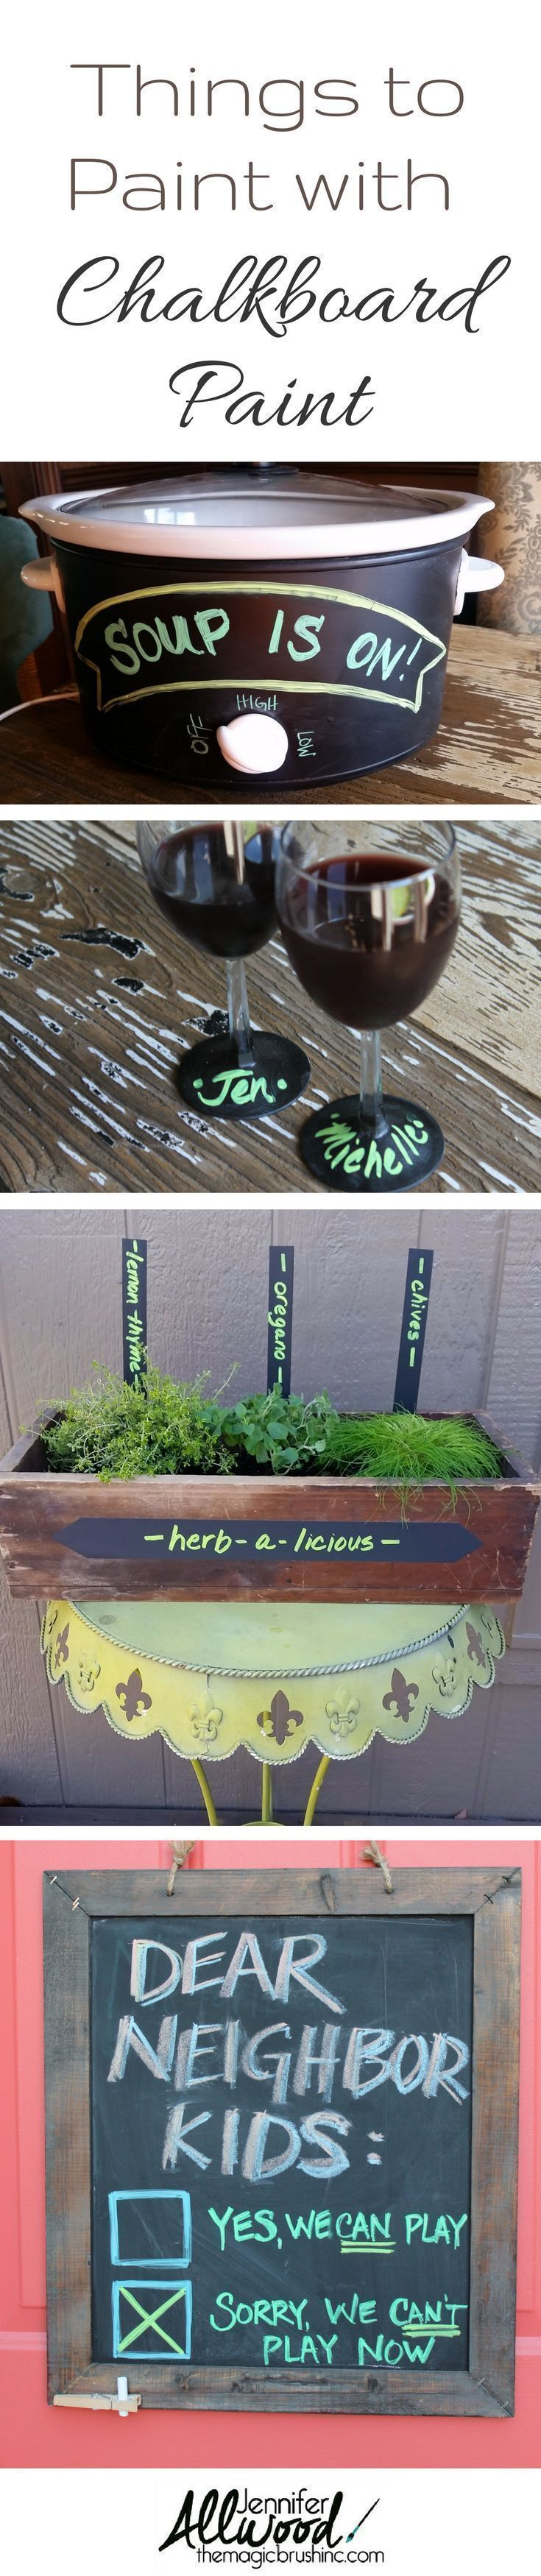 Using Chalkboard Paint on Home Decor